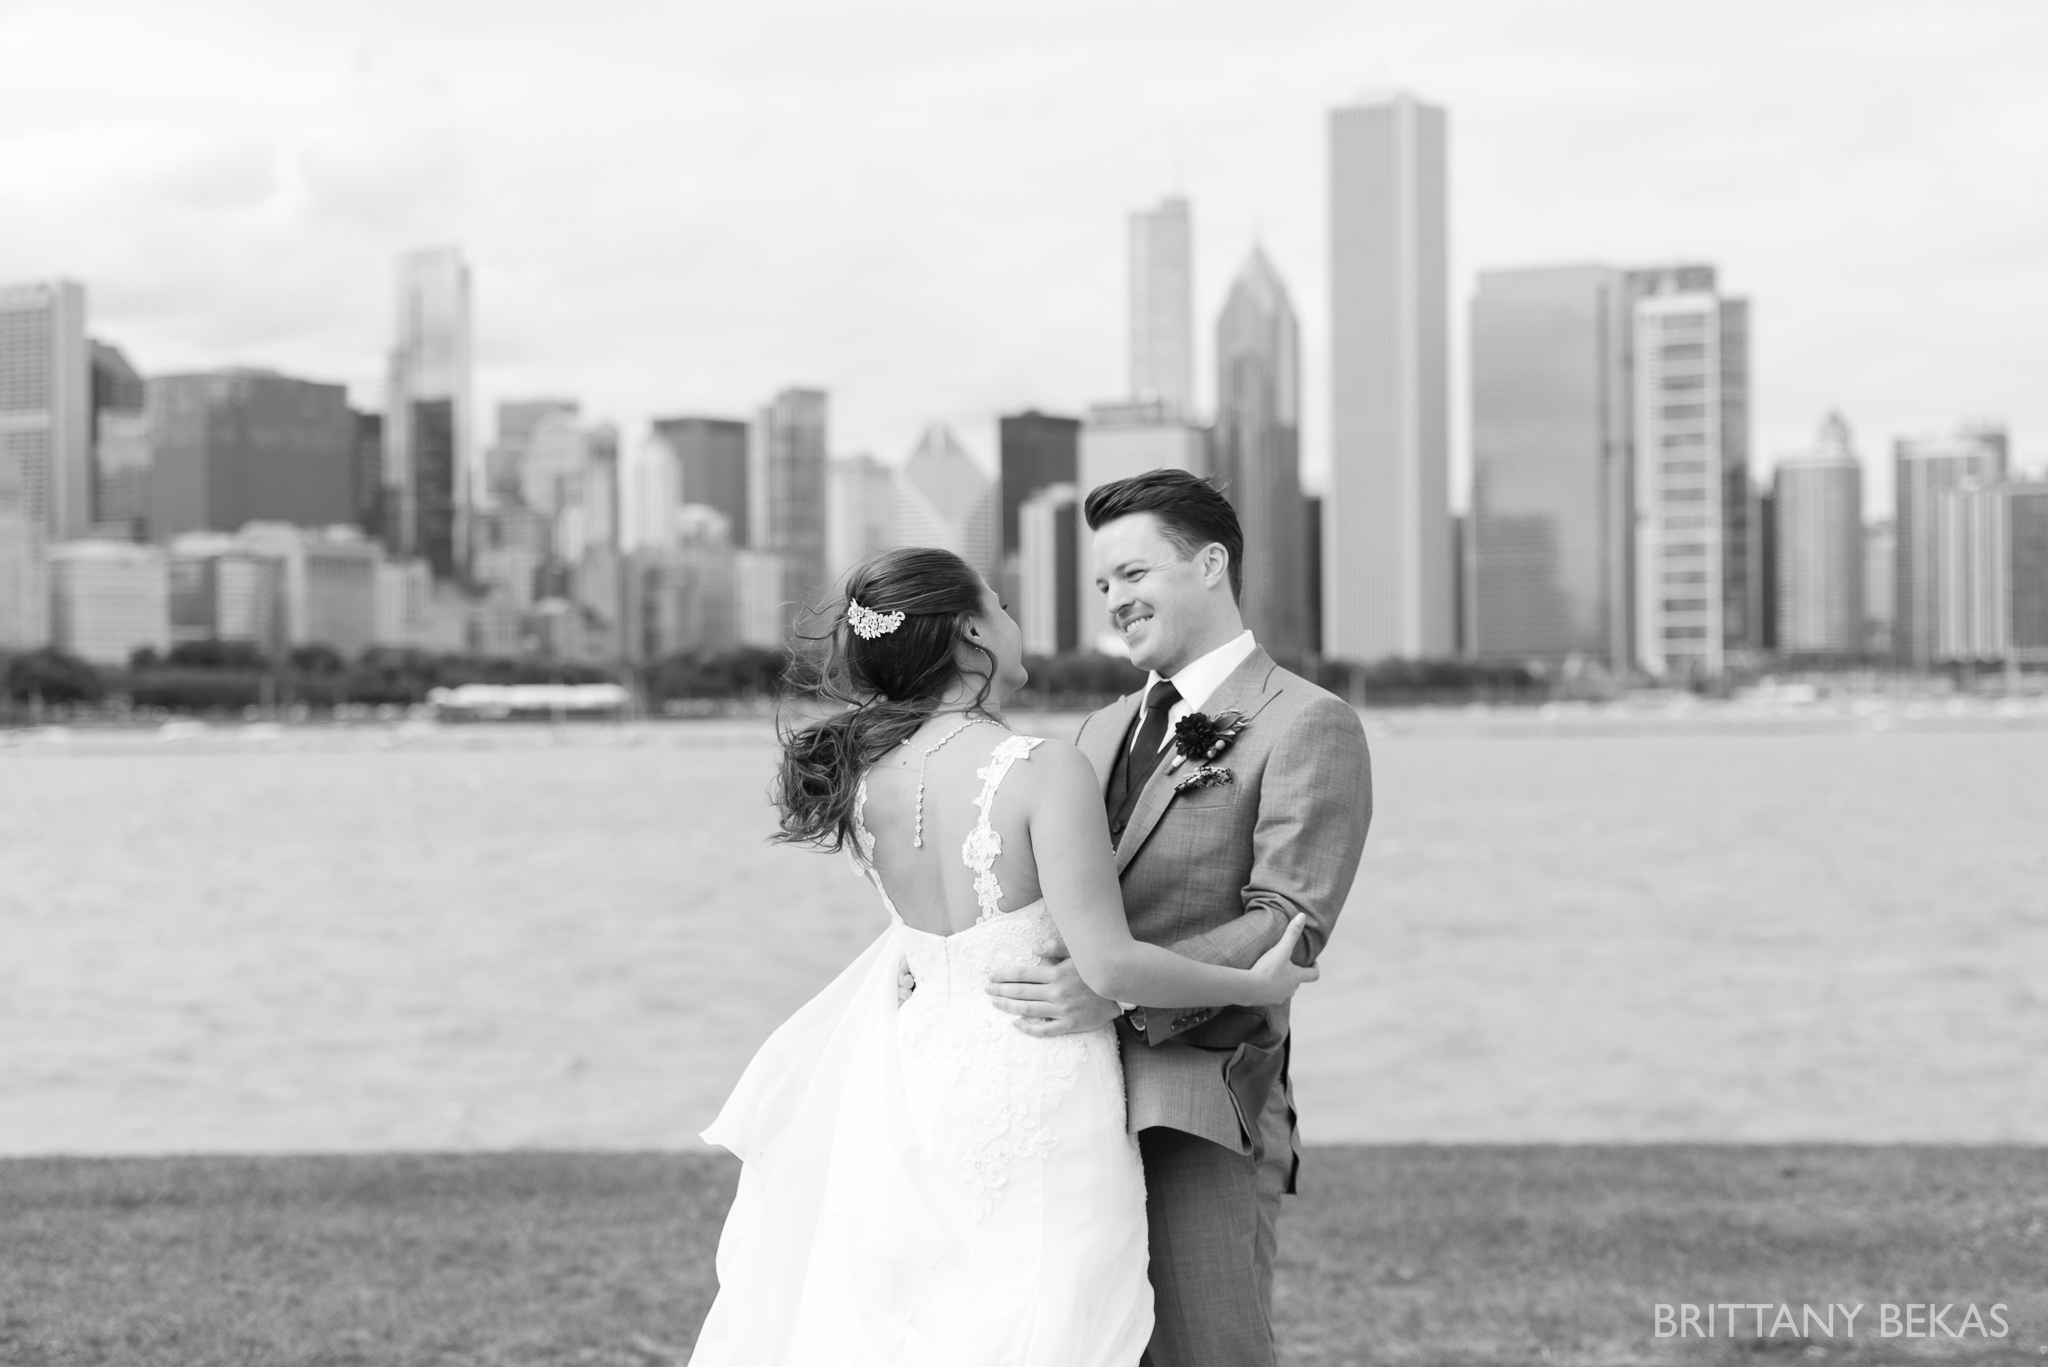 Chicago Wedding Garfield Park Conservatory Wedding Photos - Brittany Bekas Photography_0014